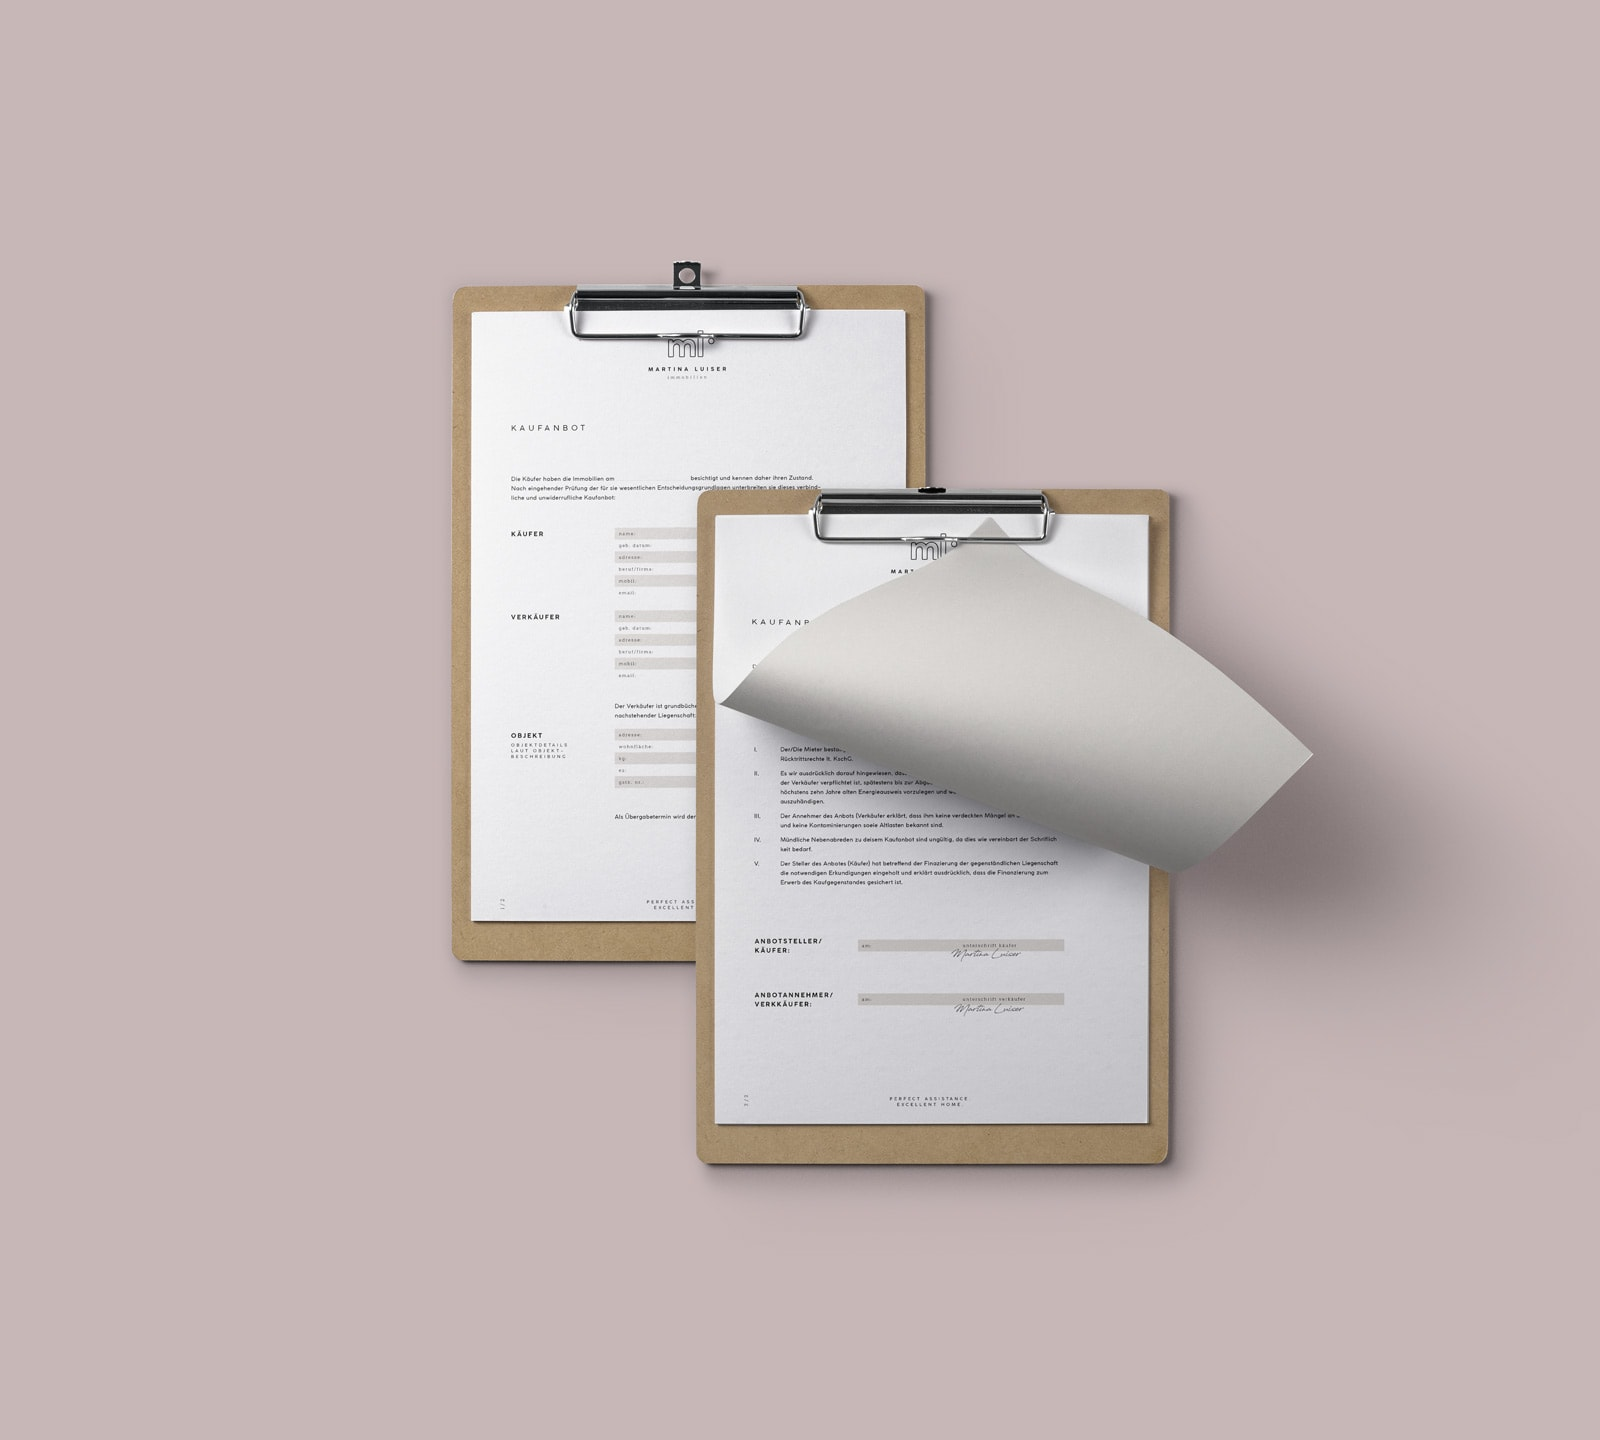 ML_Clipboard-Office-Brand-Mockup